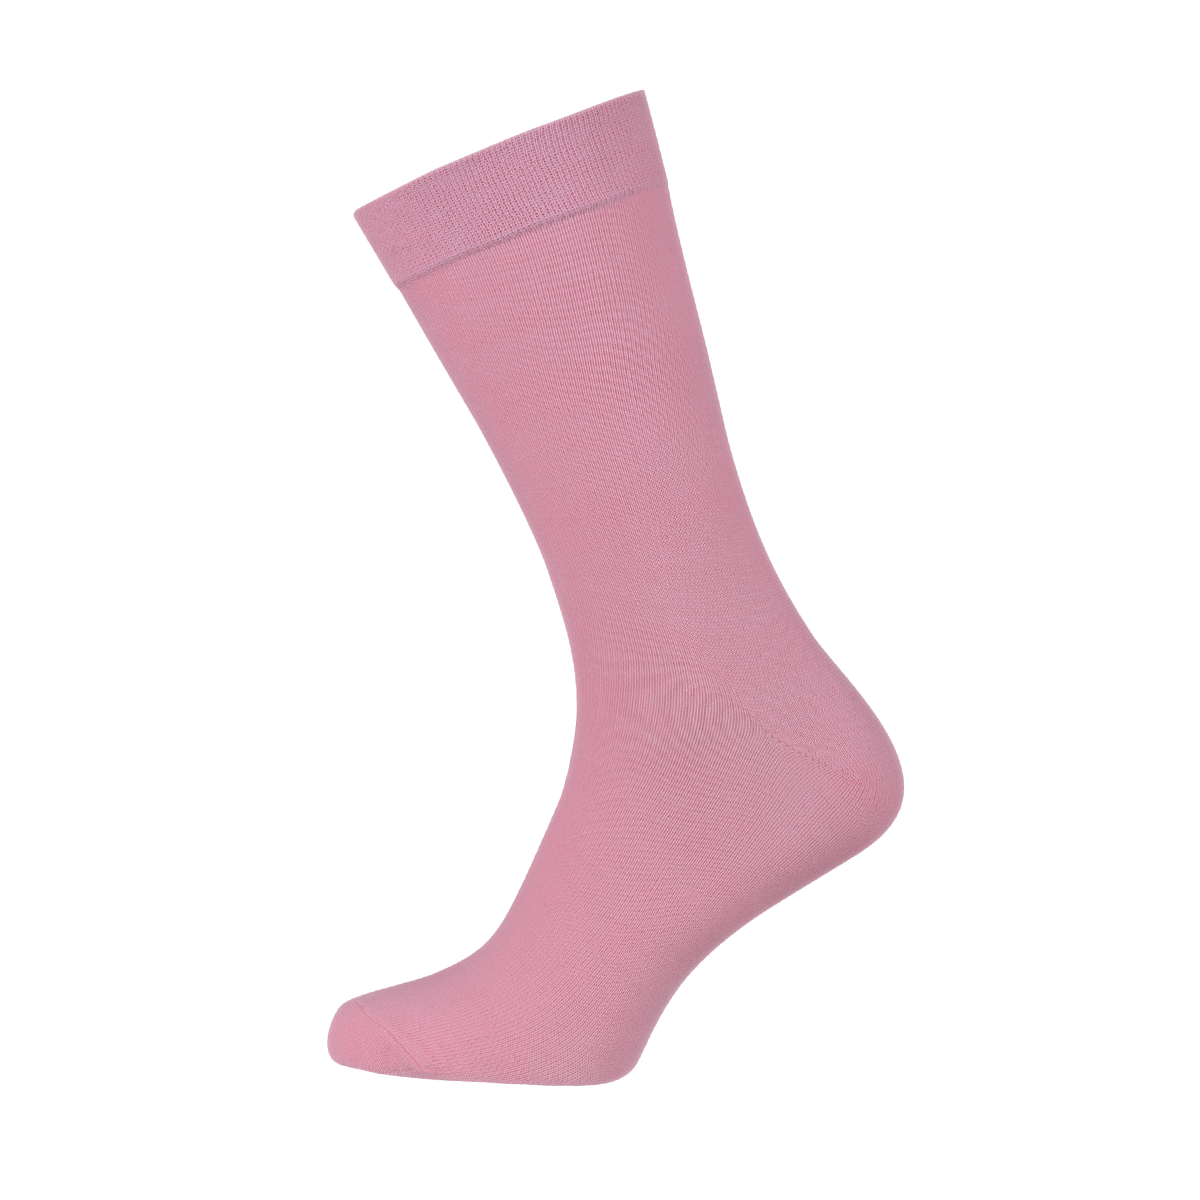 Mens Combed Cotton Socks Pink